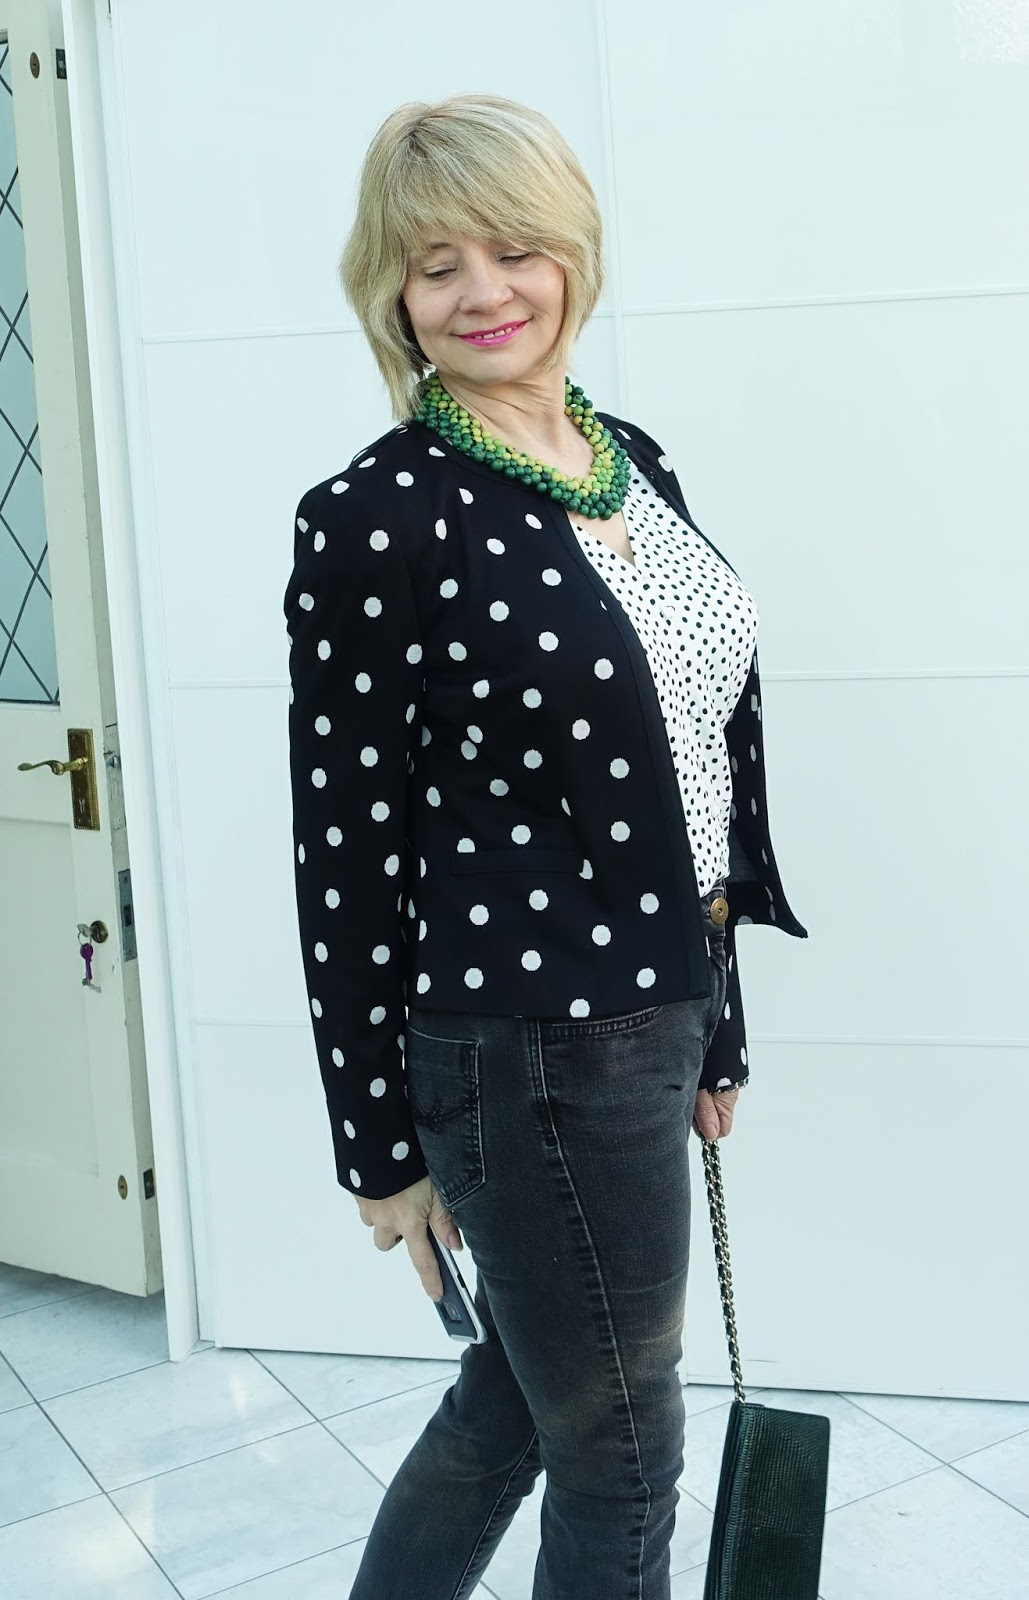 Dressing down a polka dot jacket with jeans and white boots